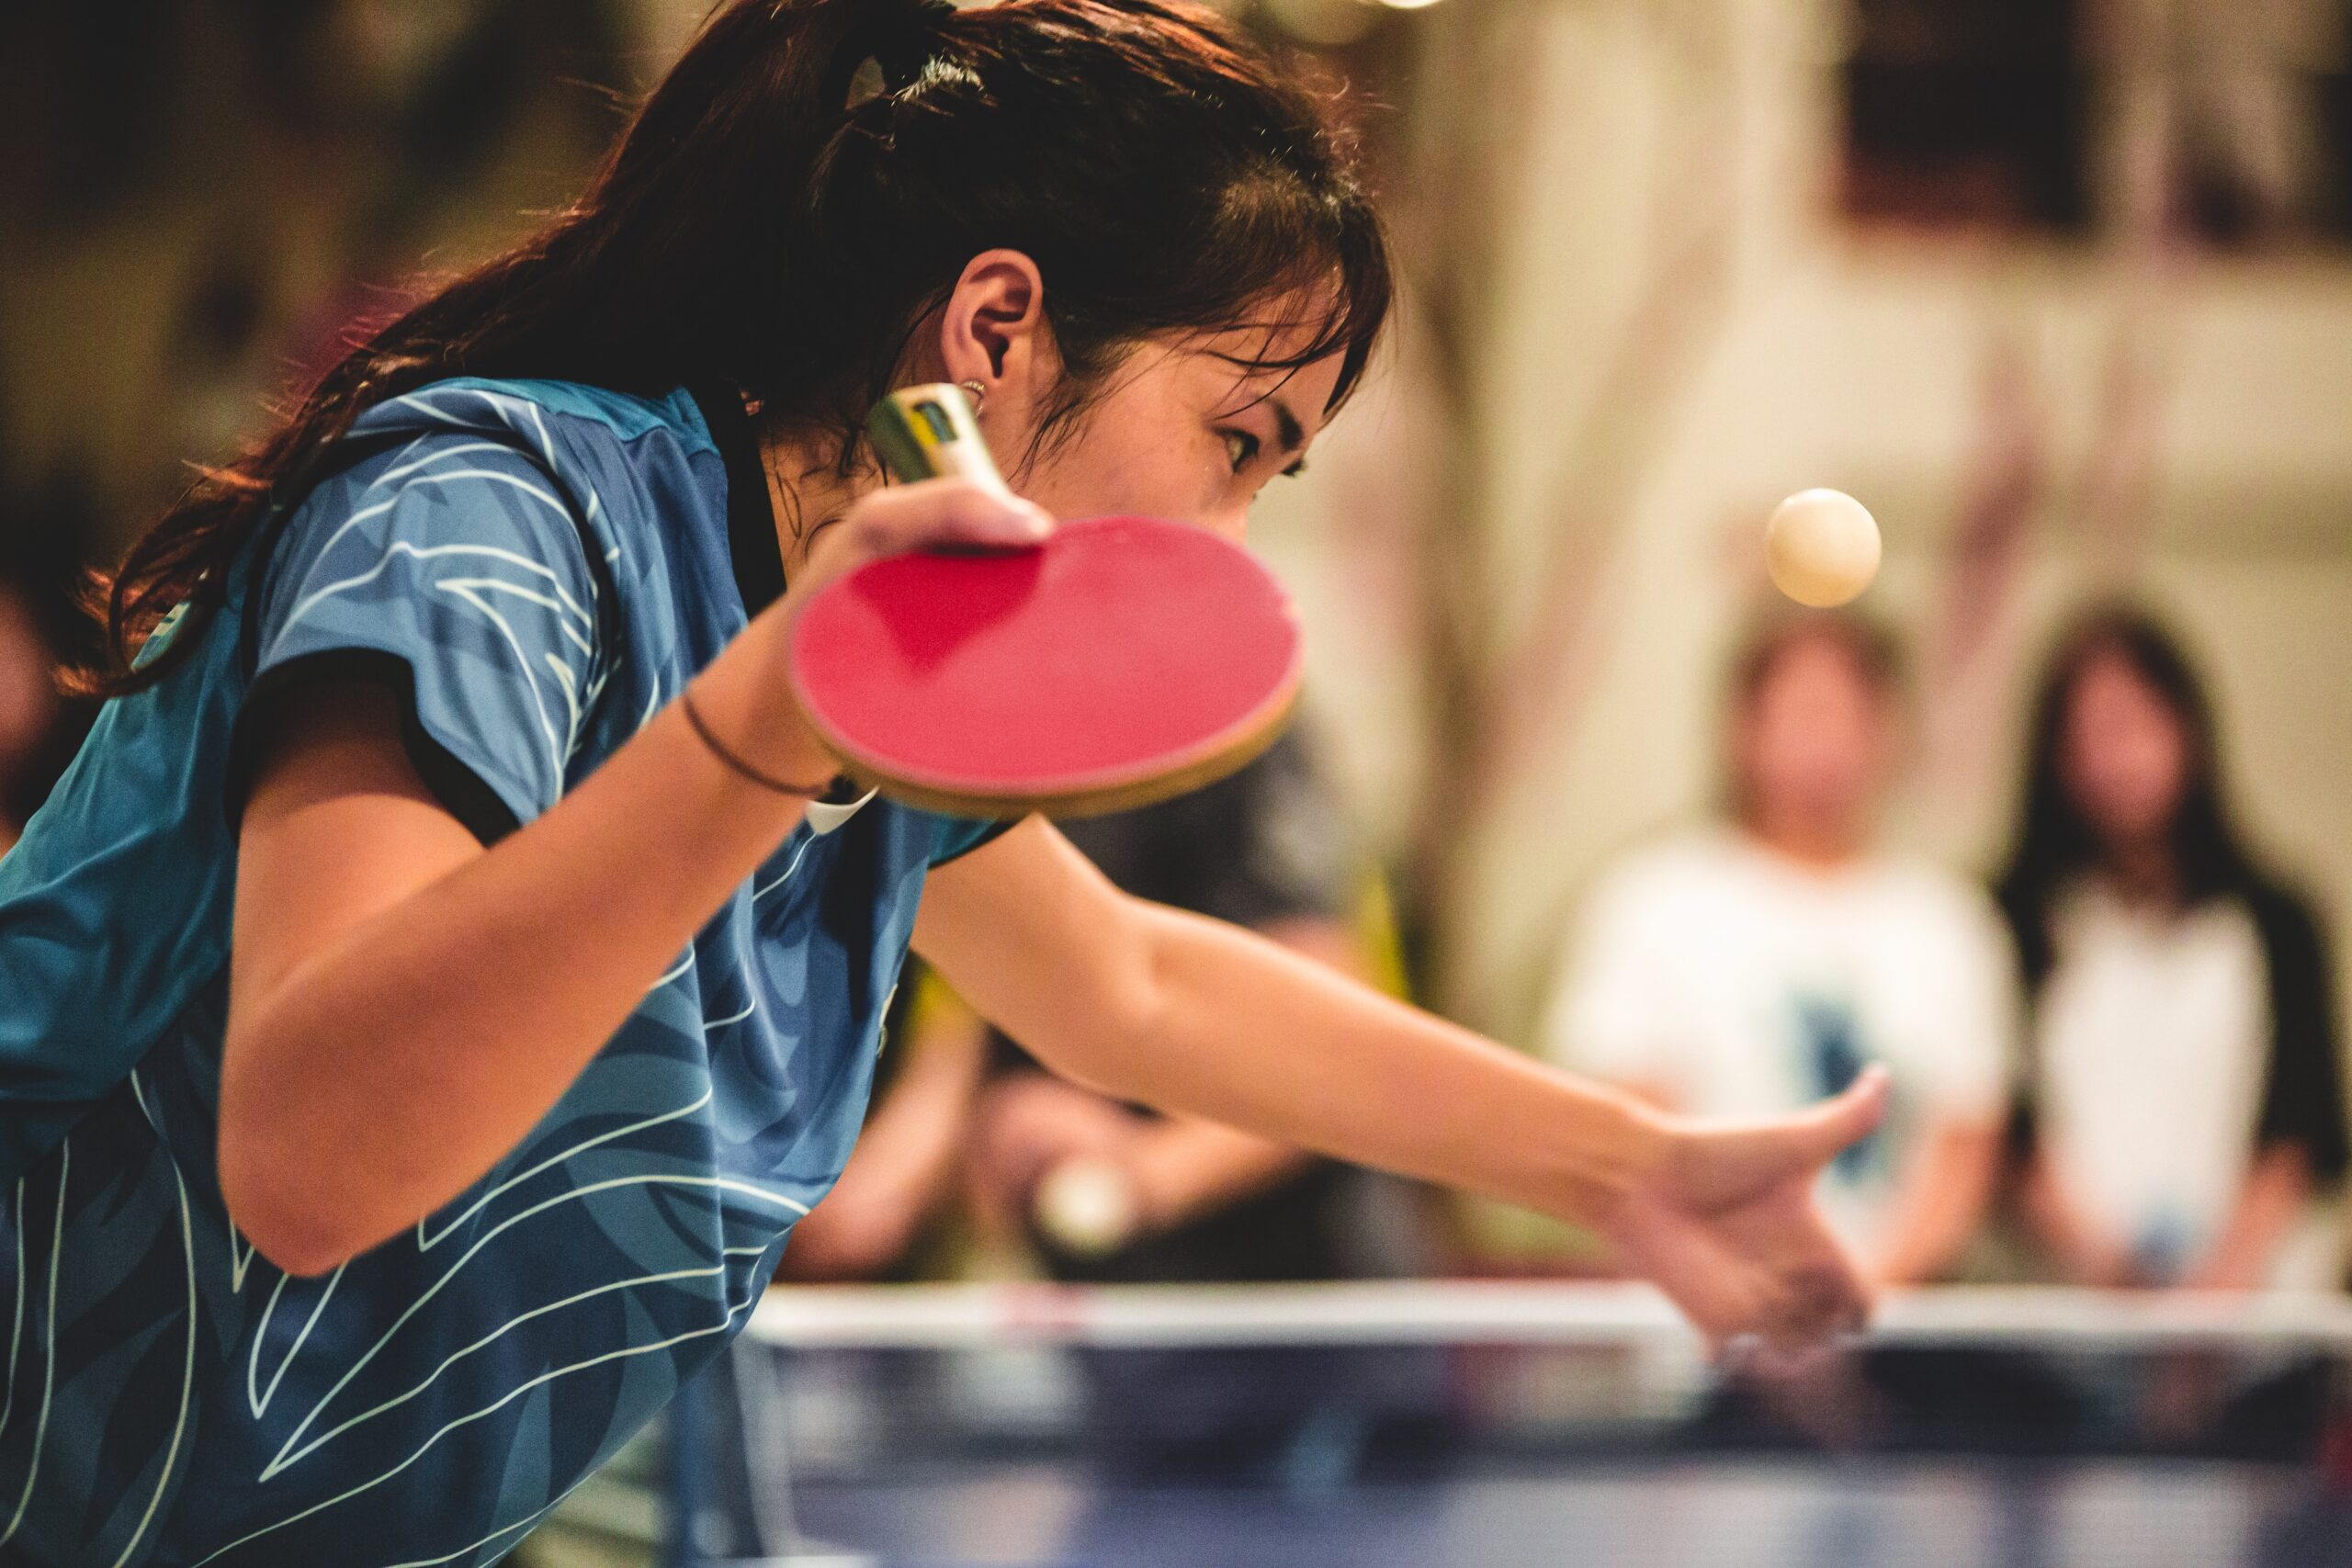 Why do table tennis players grunt